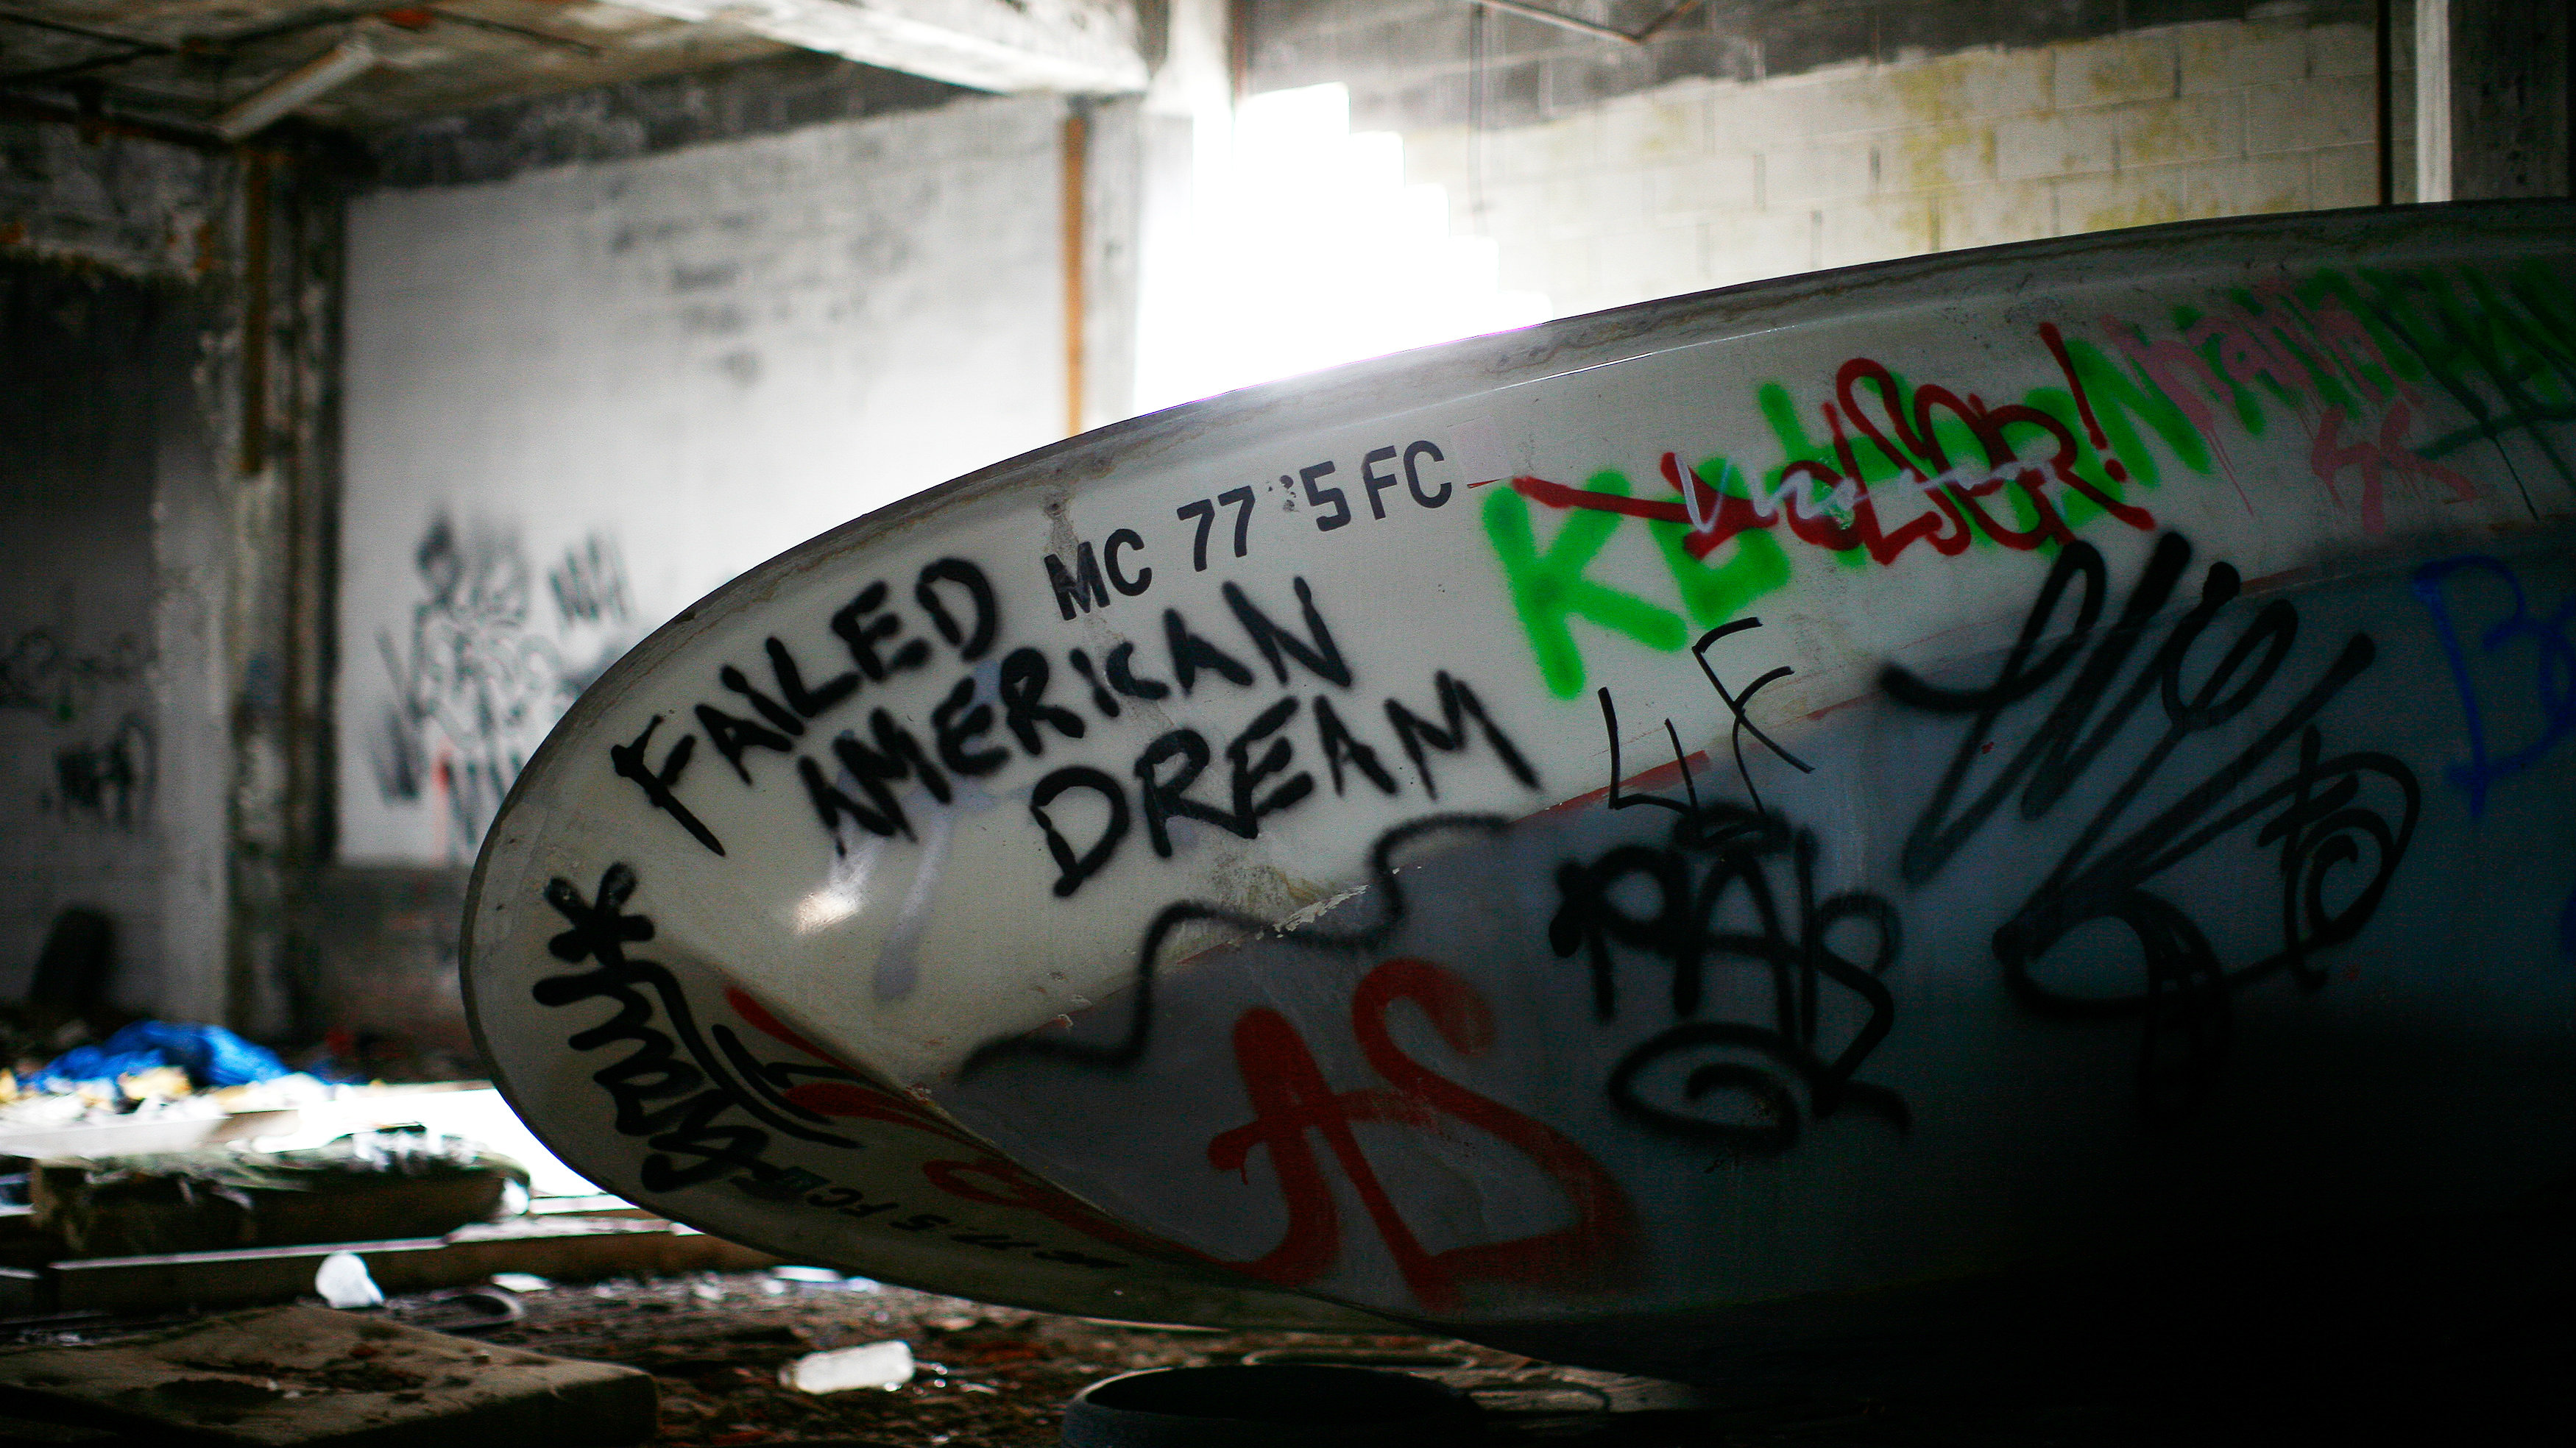 A boat filled with graffiti is seen inside the abandoned and decaying manufacturing plant of Packard Motor Car in Detroit